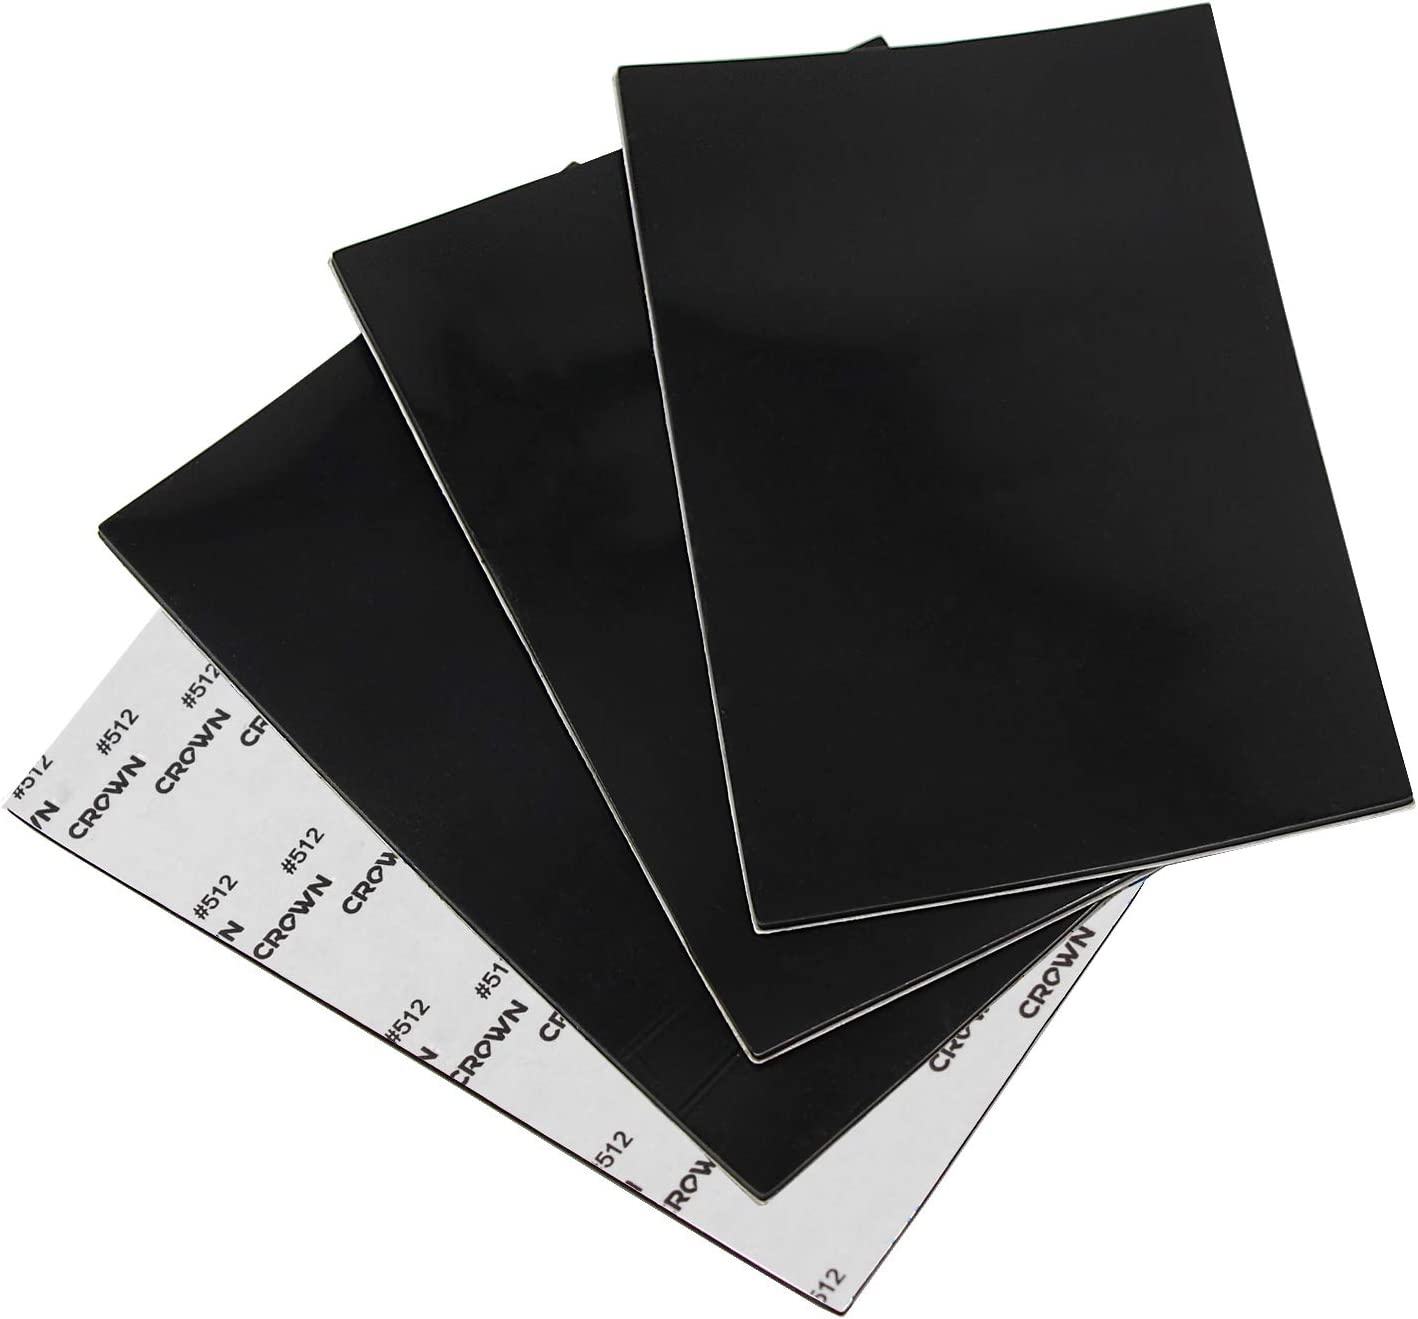 4 Pack of Rubber Pads 4 x 6 inch by 1/12 Non Slip Furniture Pads Floor Protectors Self Adhesive, Rubber Sheet Self-Stick Silicone Gasket Material Non Skid Furniture Grippers - Black